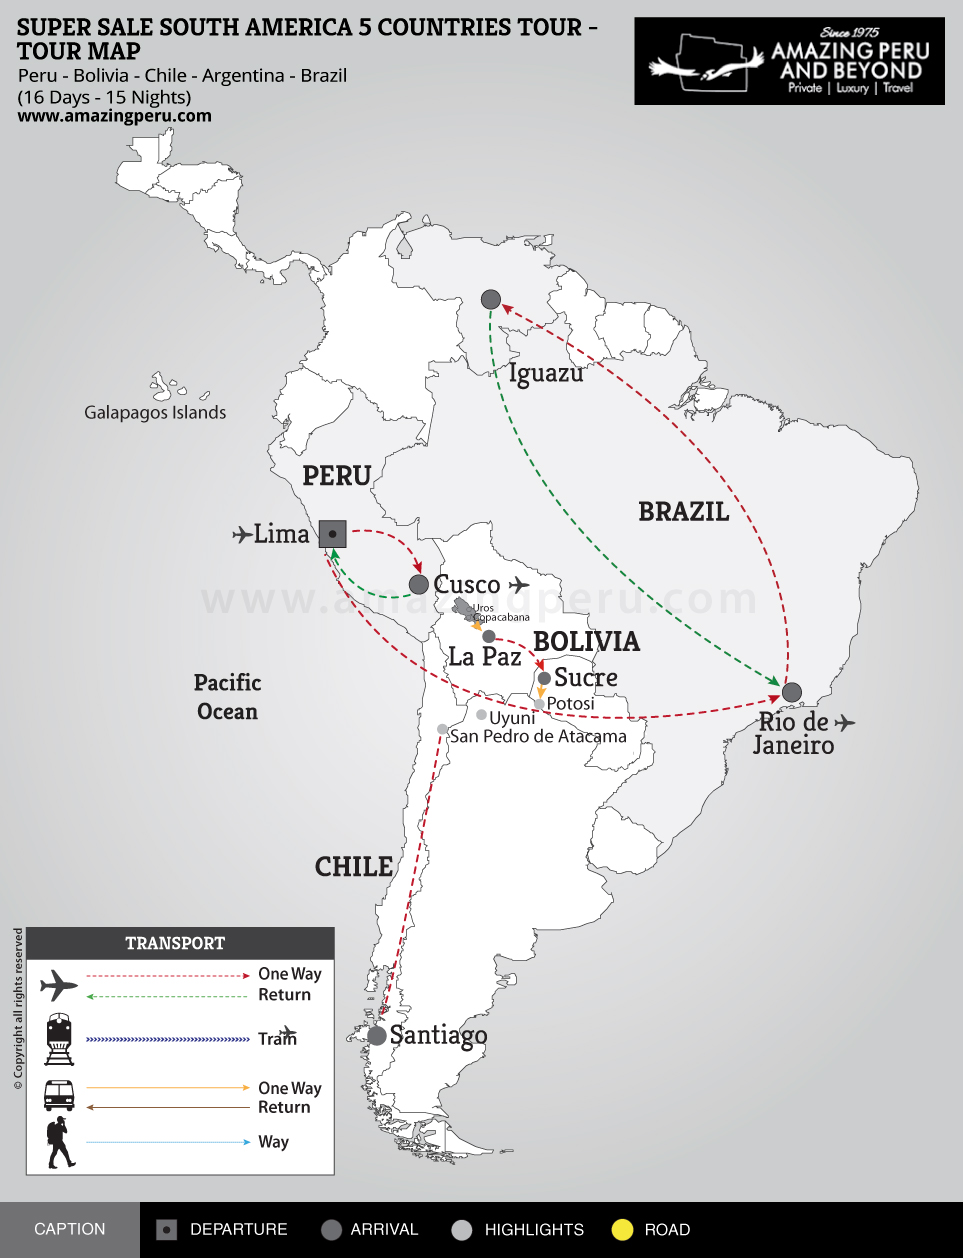 Super Sale South America 5 Countries Tour - 16 days / 15 nights.